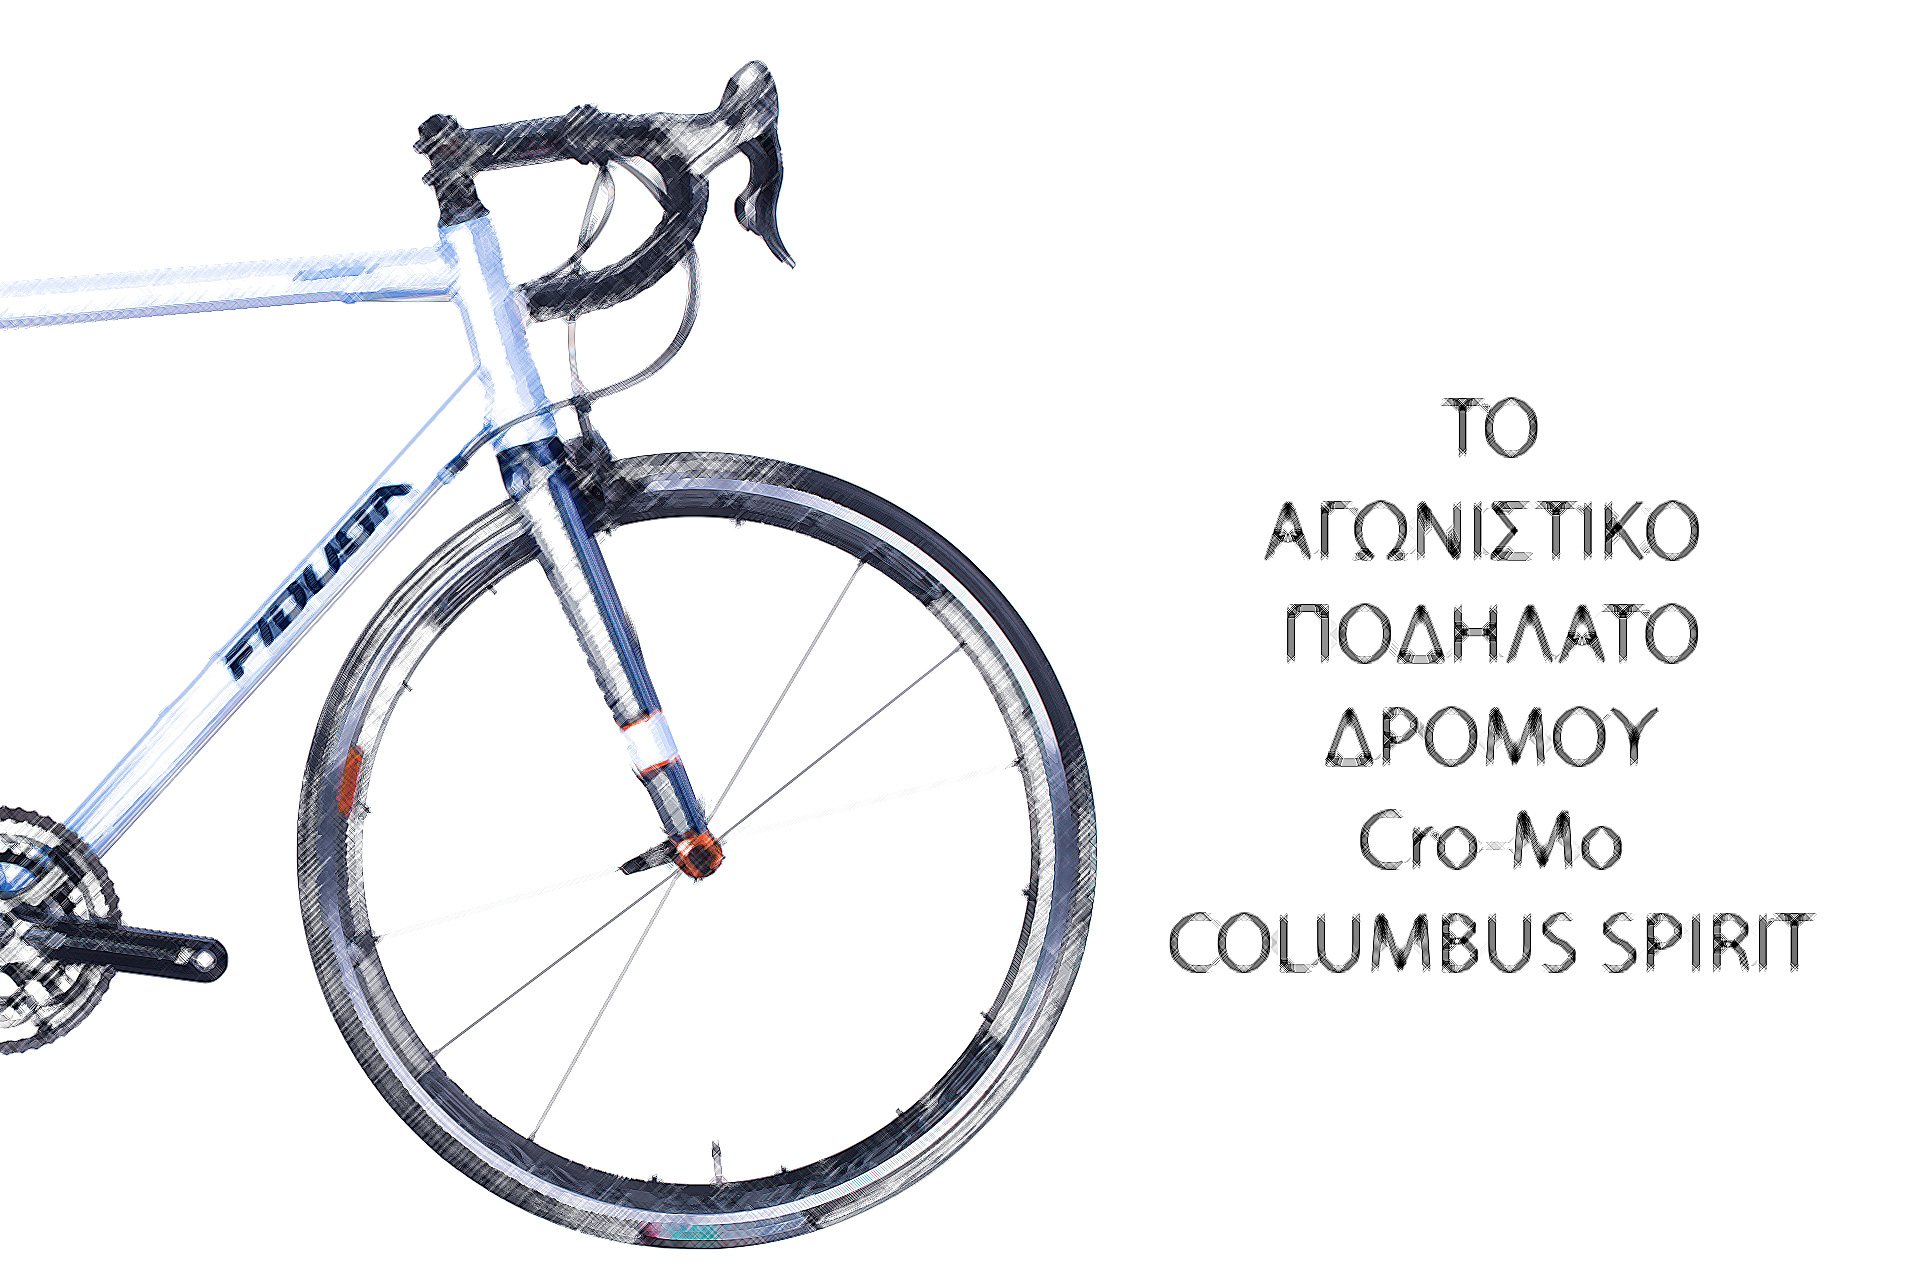 Cro-Mo-Columbus-Spirit-Road-Bicycle-6 Το Columbus Spirit Cro-Mo αγωνιστικό ποδήλατο